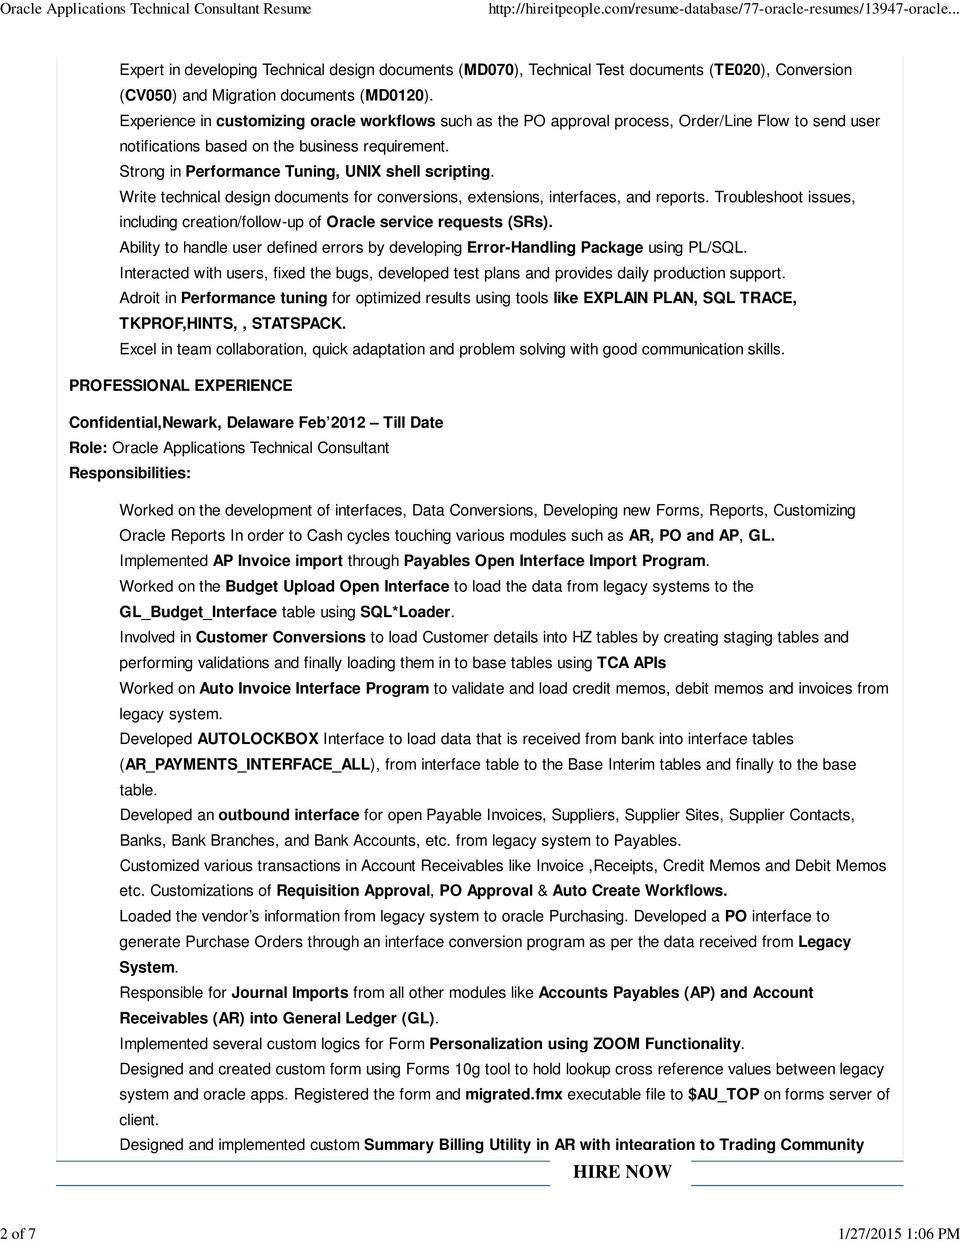 ORACLE APPLICATIONS TECHNICAL CONSULTANT RESUME - PDF